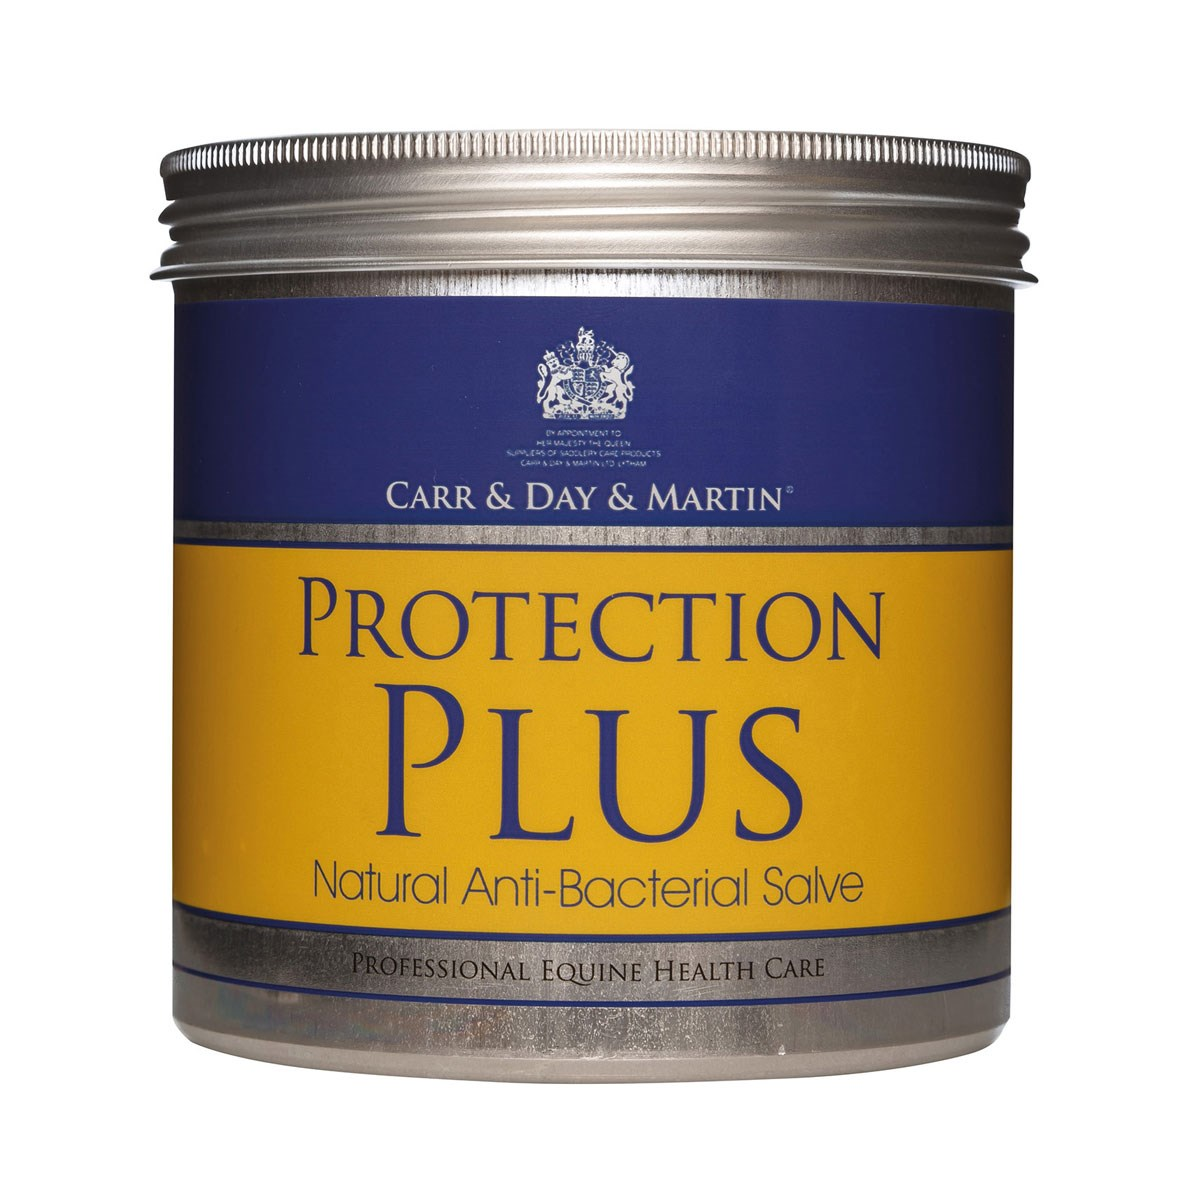 Carr & Day & Martin Protection Plus Natural Anit-Bacterial Salve